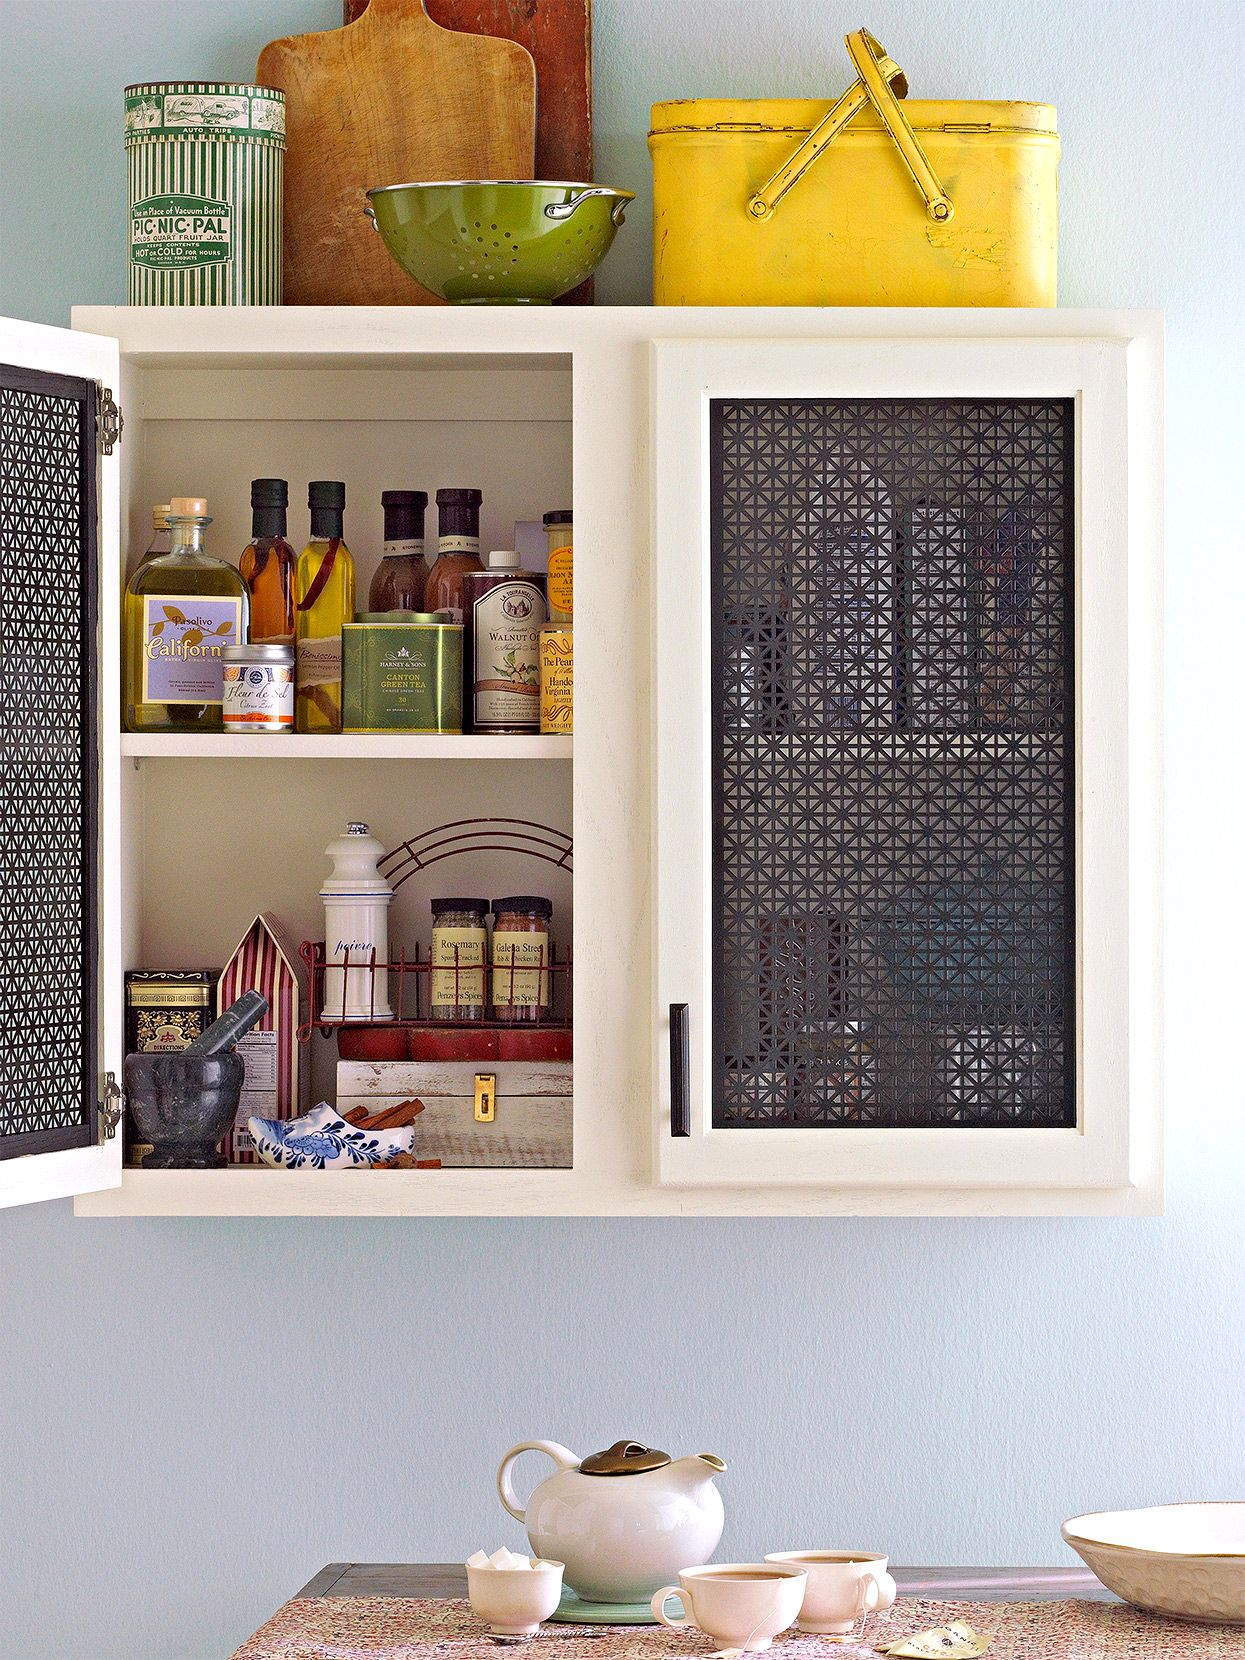 26 Diy Ways To Update Your Kitchen Cabinets Without Replacing Them In 2020 Metal Kitchen Cabinets Update Cabinets Cabinet Makeover